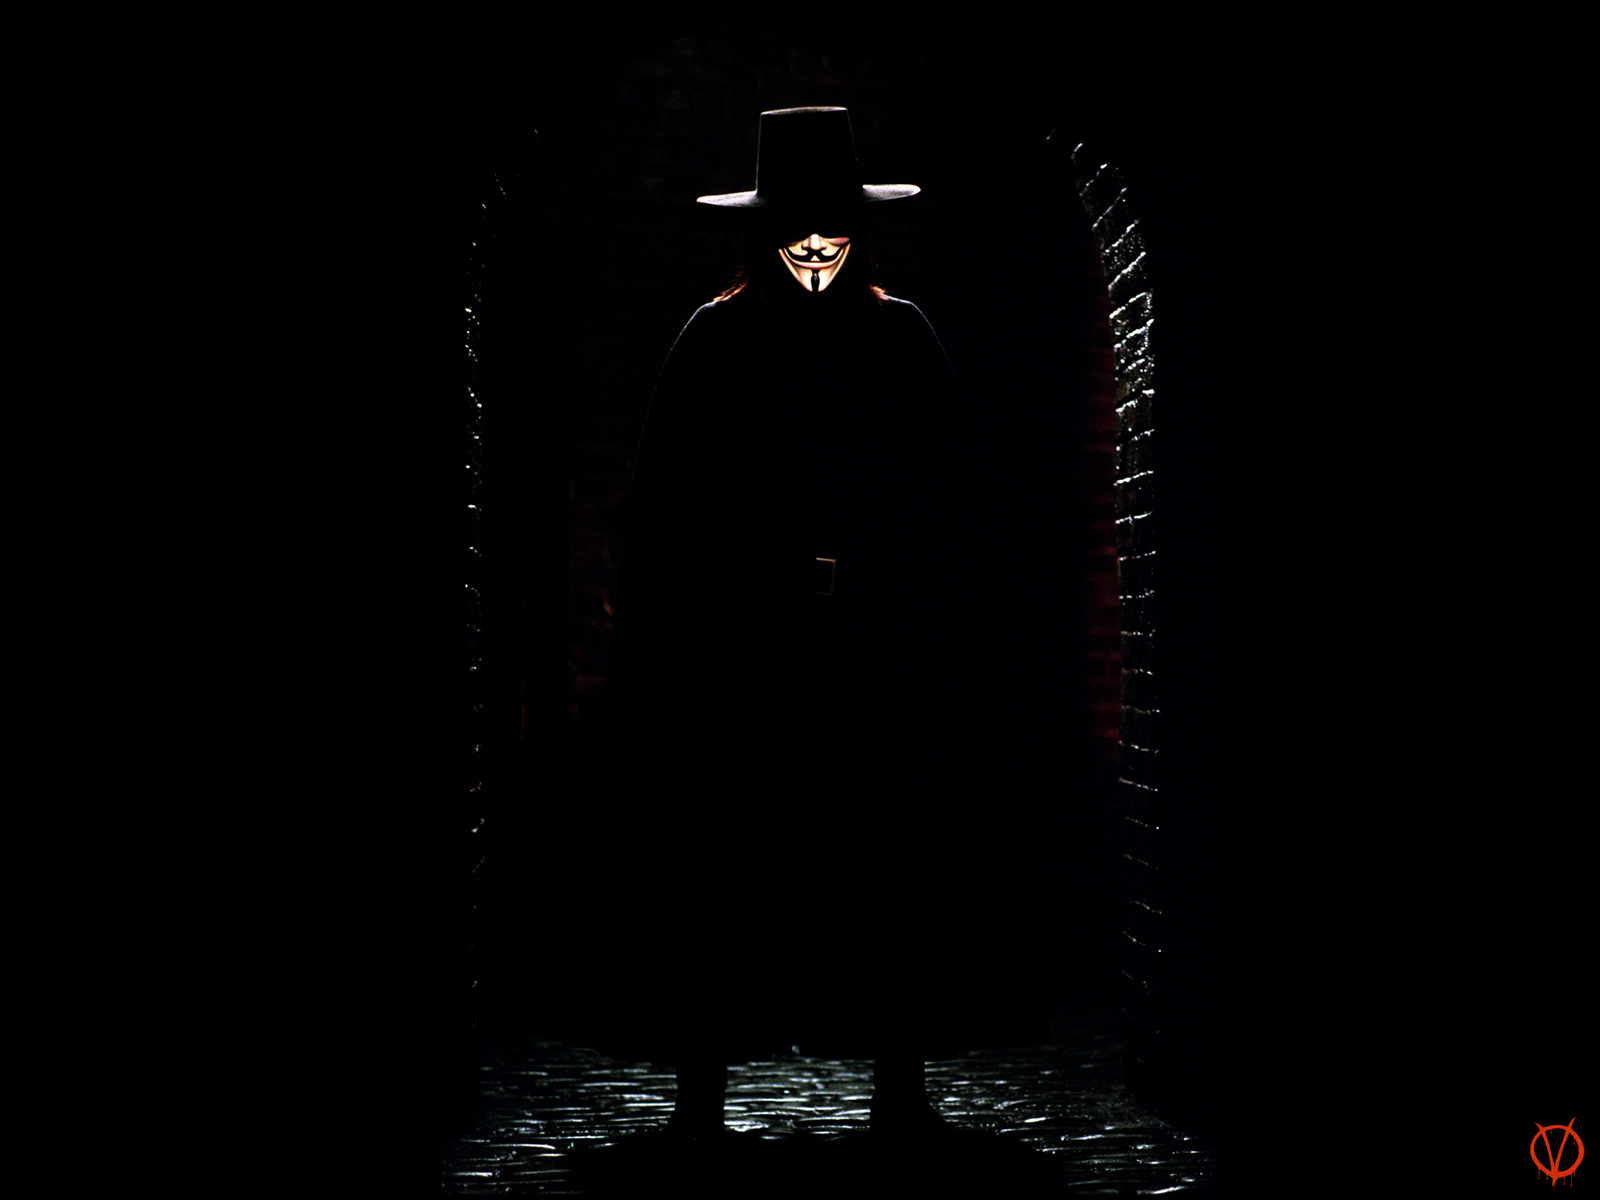 v for vendetta and identity V is the title character of the comic book series v for vendetta, created by alan moore and david lloydhe is a mysterious anarchist, vigilante, and freedom fighter who is easily recognizable by his guy fawkes mask, long hair and dark clothing.